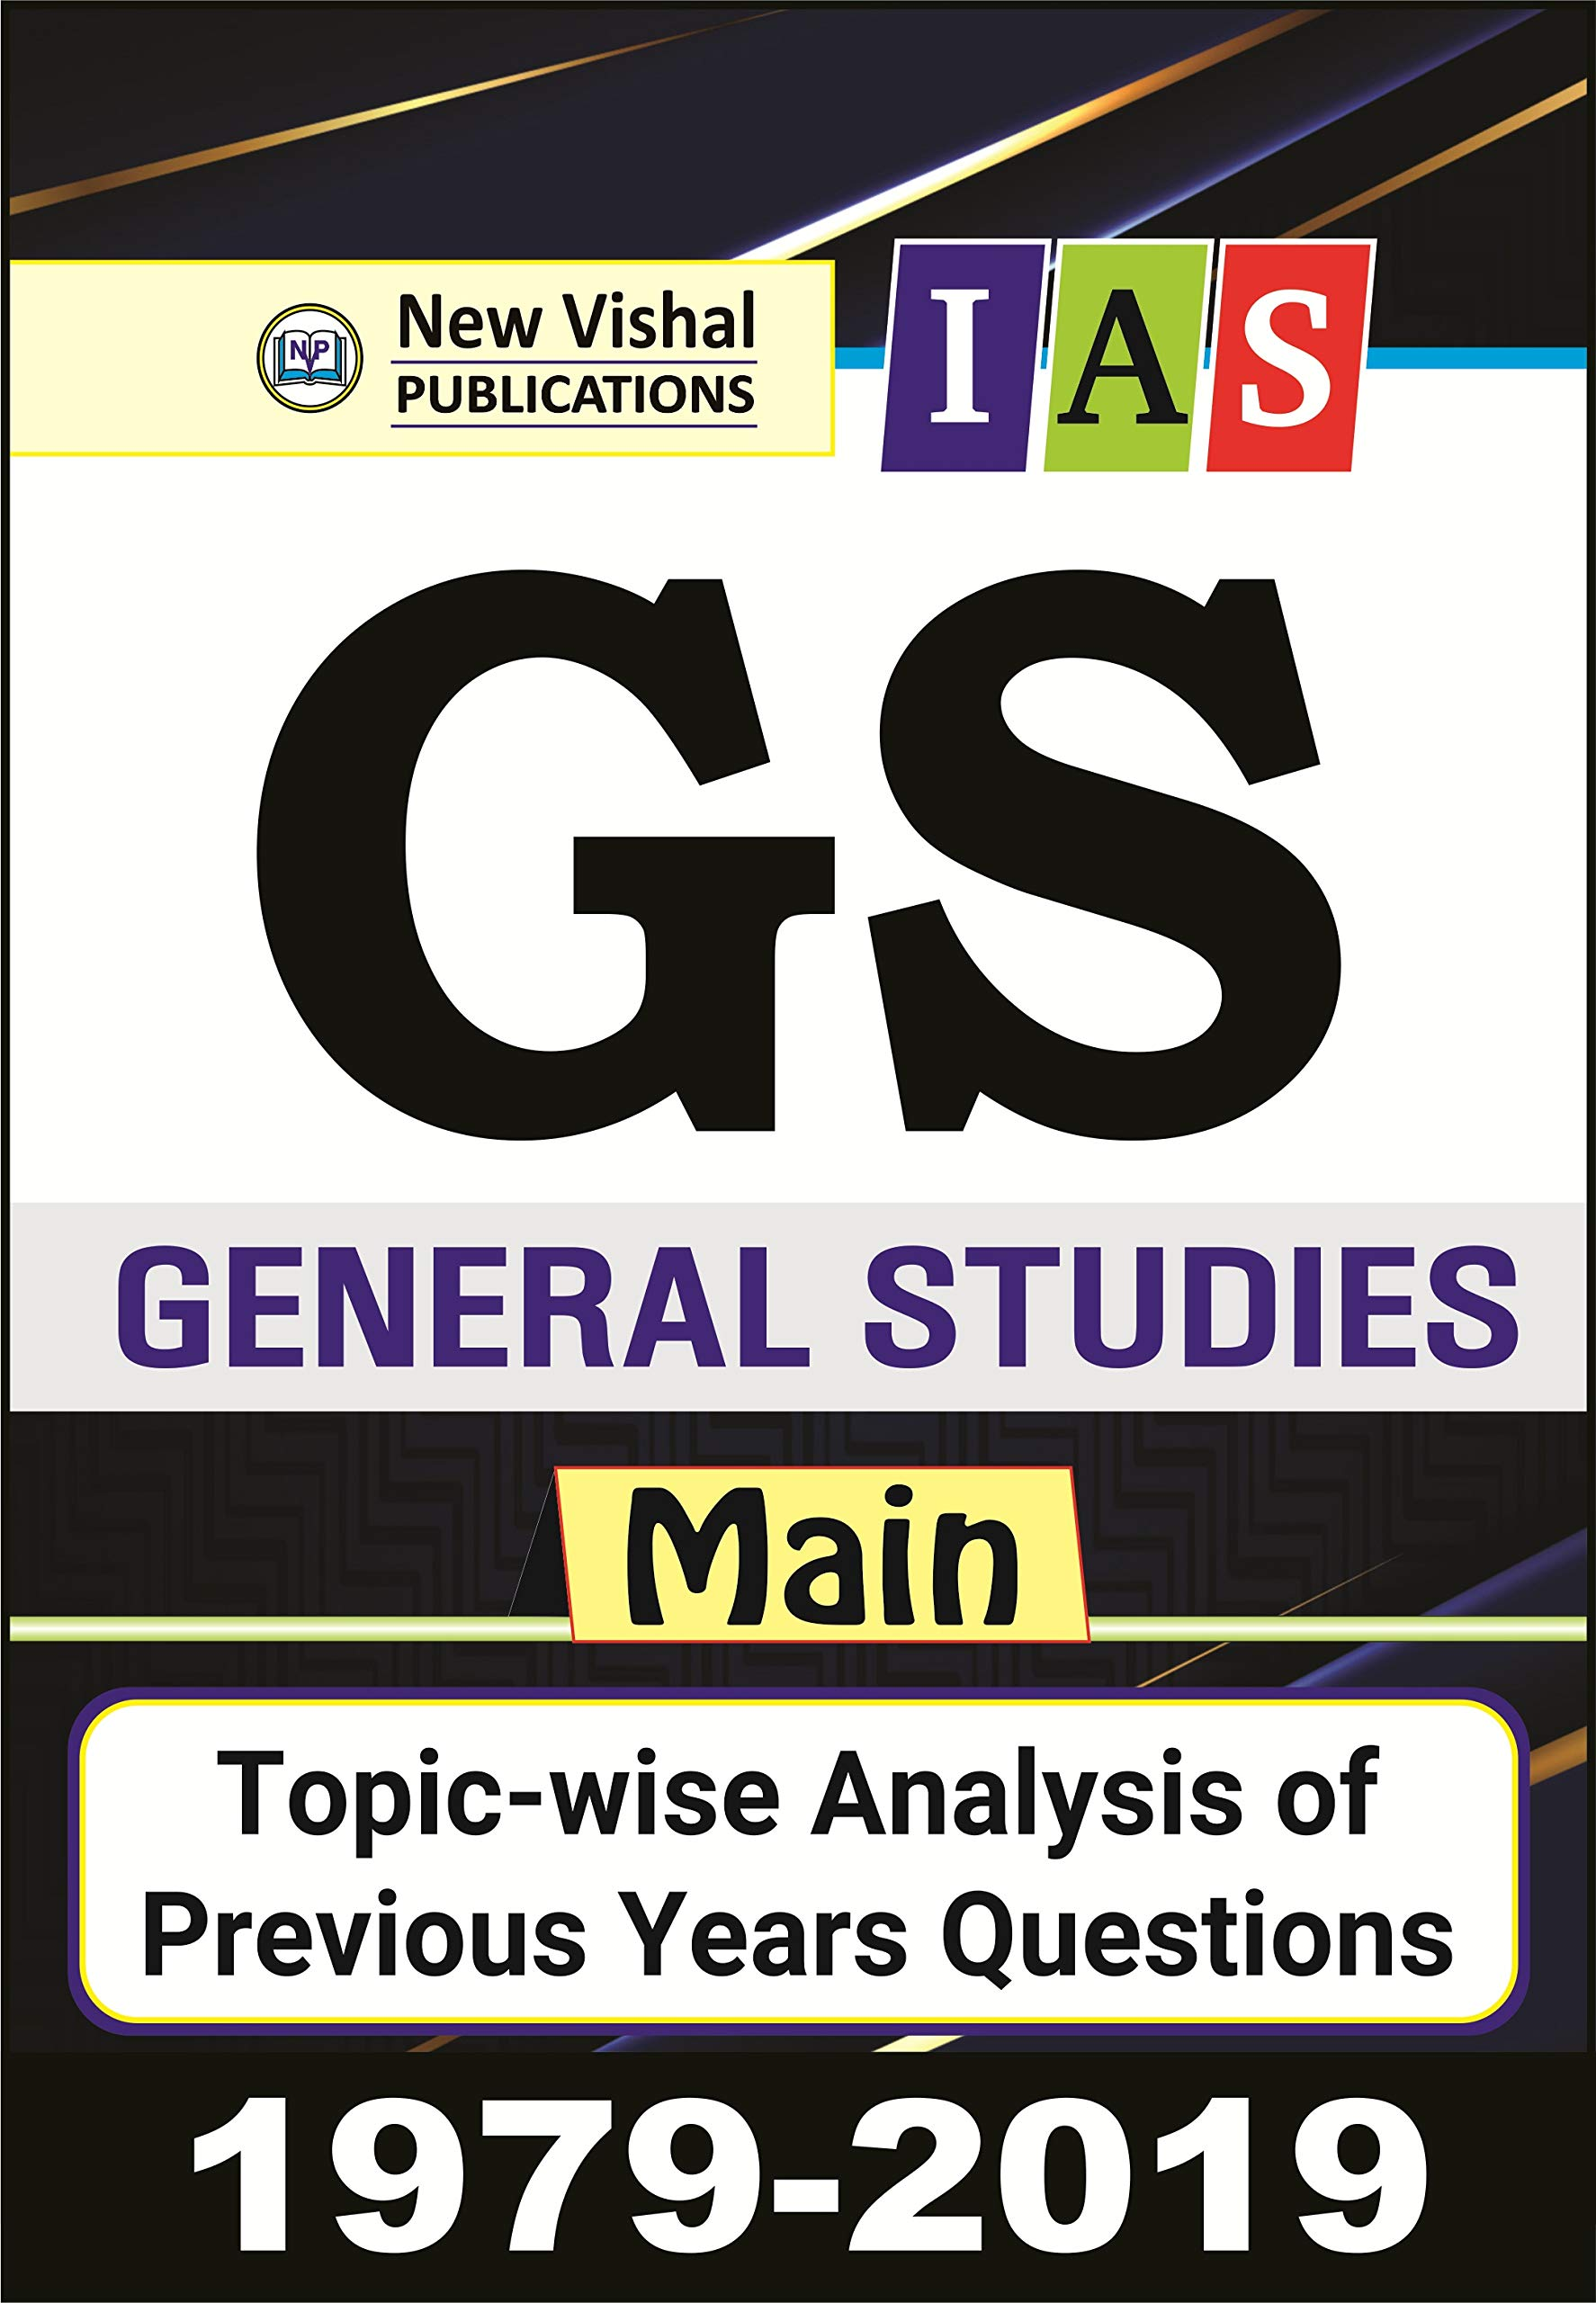 I.A.S. General Studies - Main (GS) Topic Wise Previous Years Papers (1979-2019) Paperback – 5 November 2019